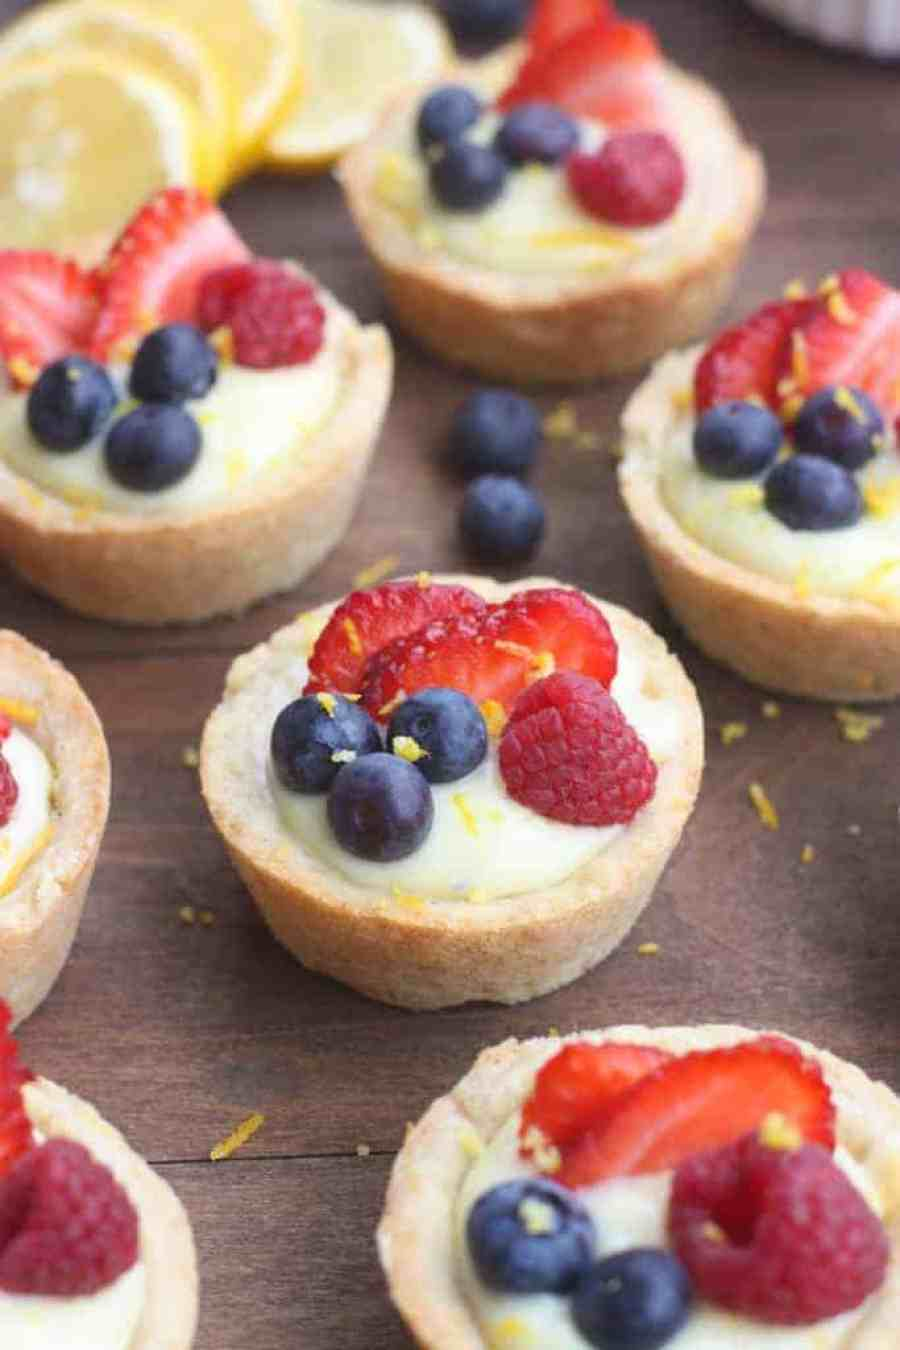 Creamy Lemon Sugar Cookie Cups - my favorite sugar cookie recipe baked in a muffin tin and filled with creamy lemon pie filling. Topped with fresh fruit. A beautiful and easy dessert that will impress your guests!